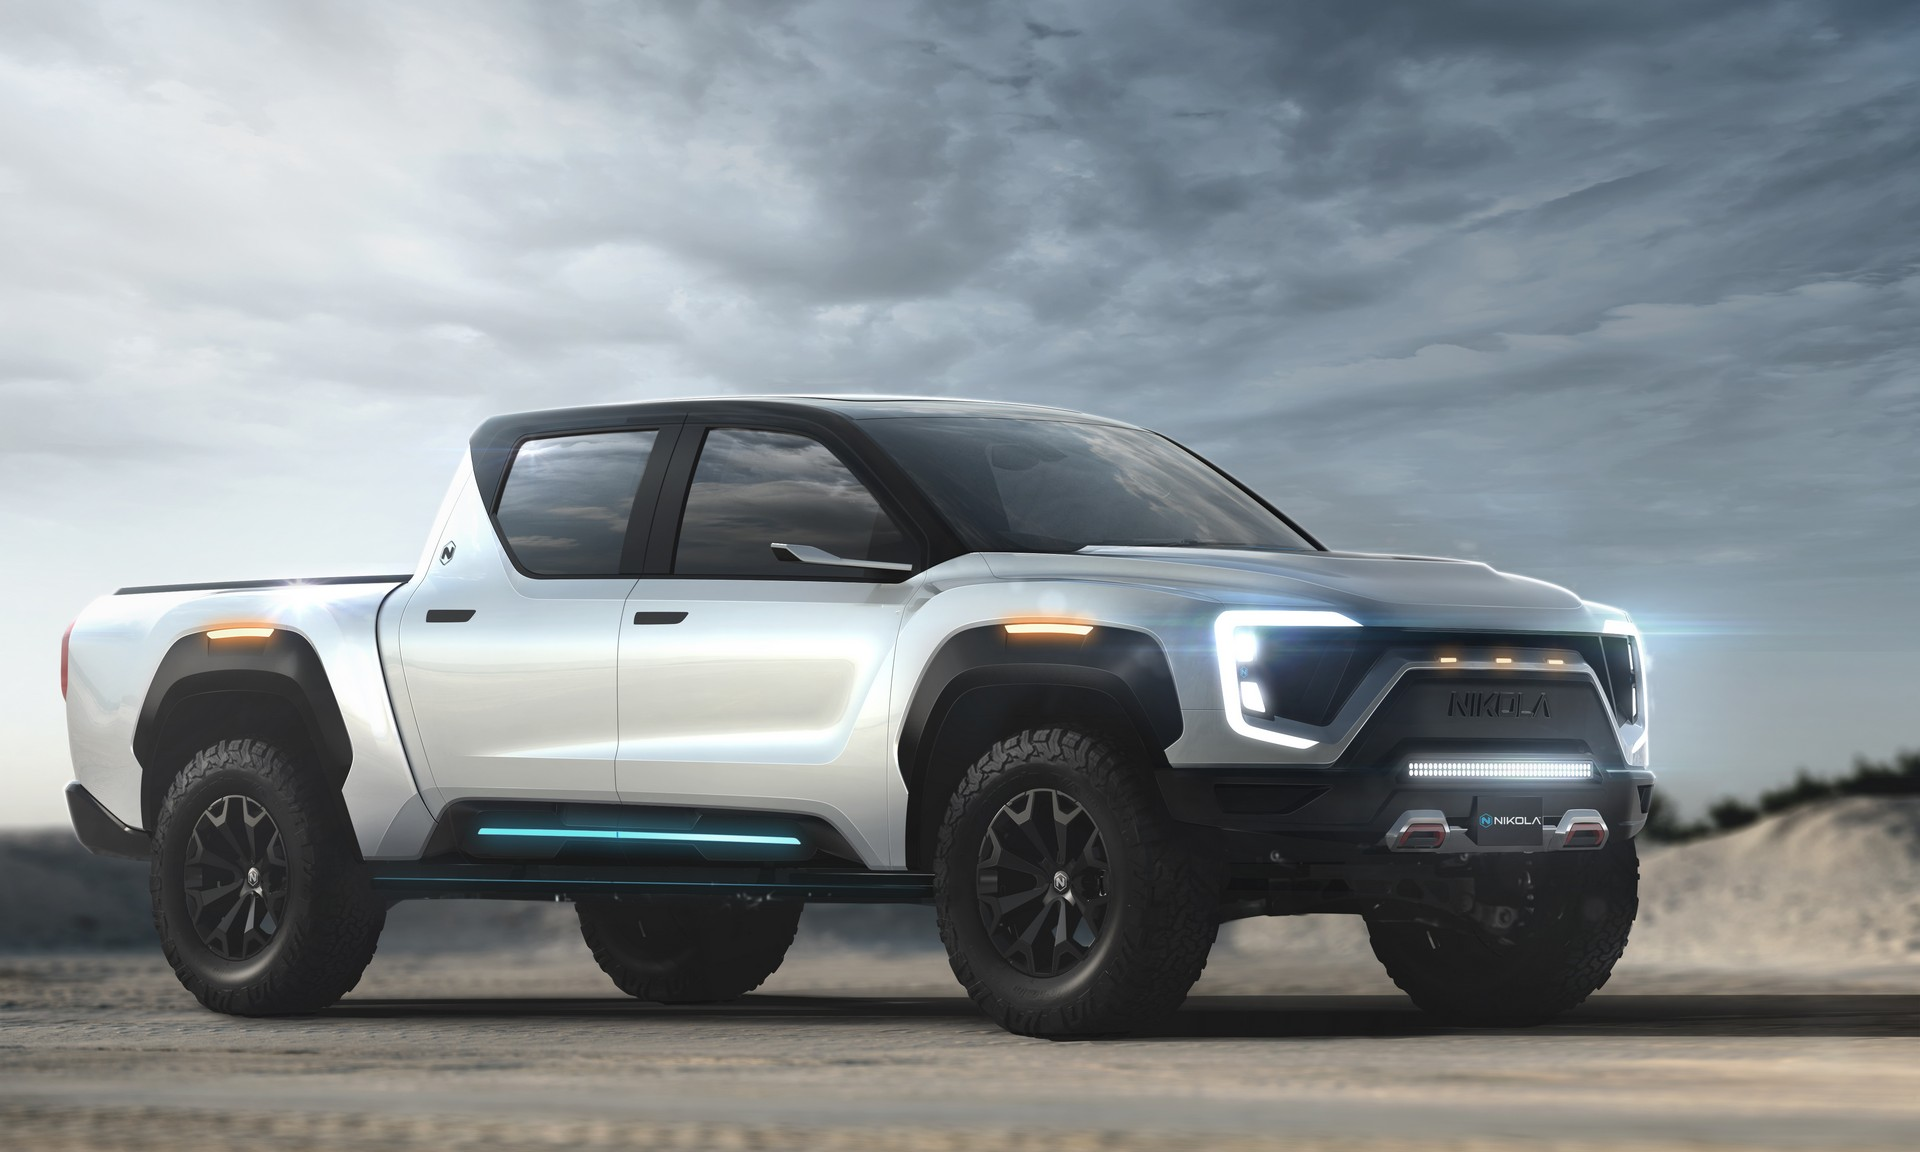 Nikola Badger Electric Pickup Brings 300 Miles of Drive Range